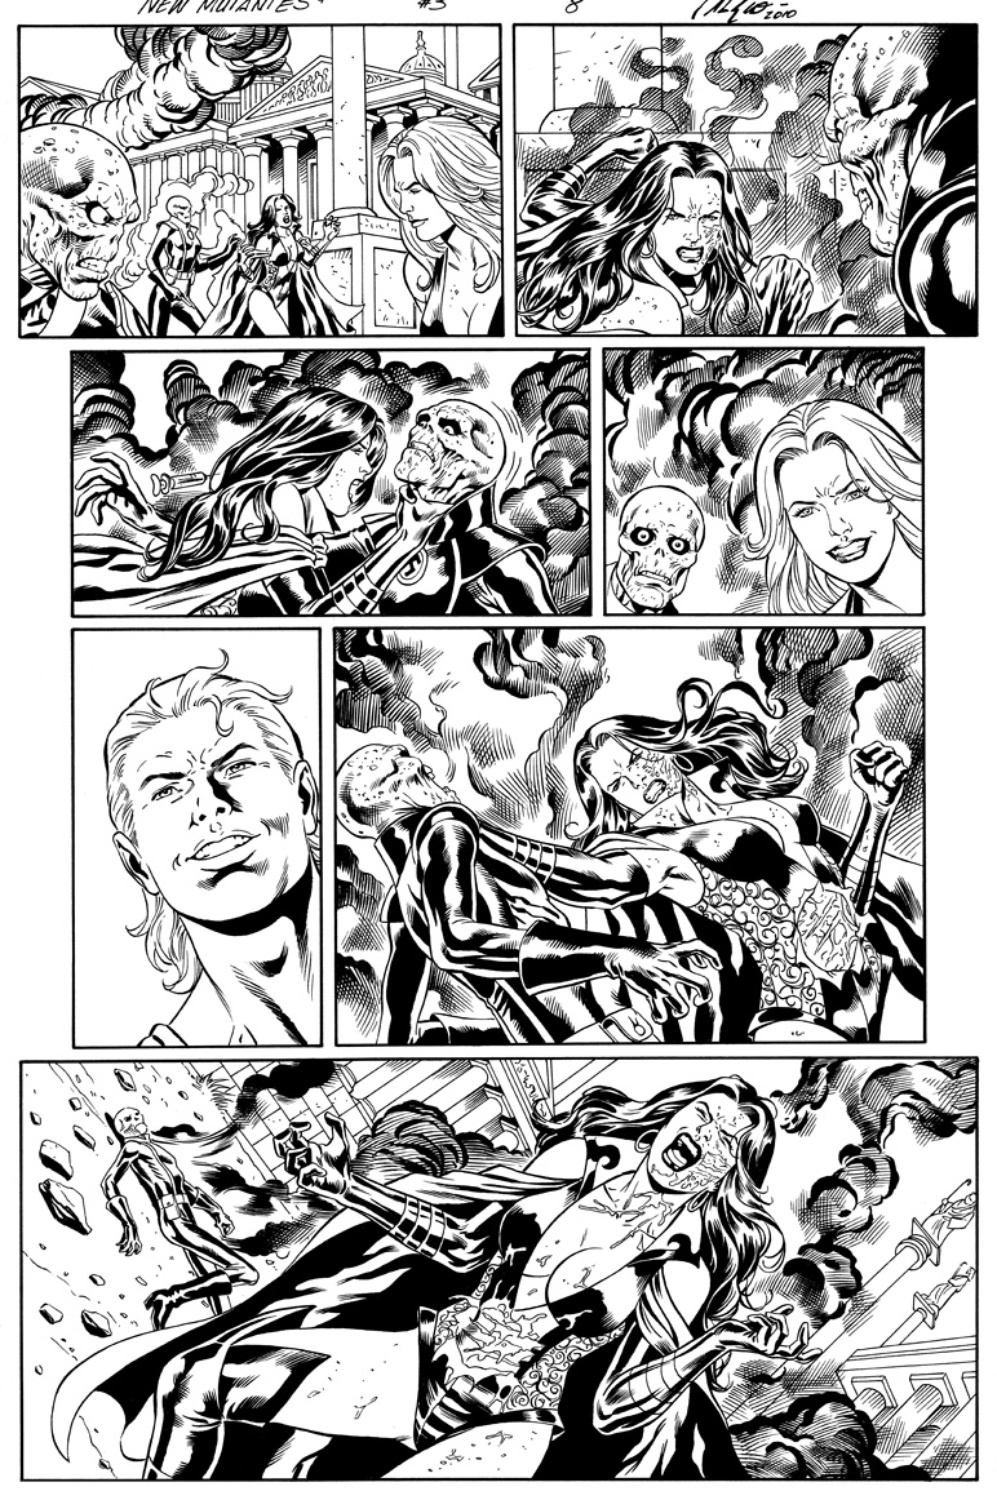 Original Art Page - The New Mutants Forever - 3 pg08